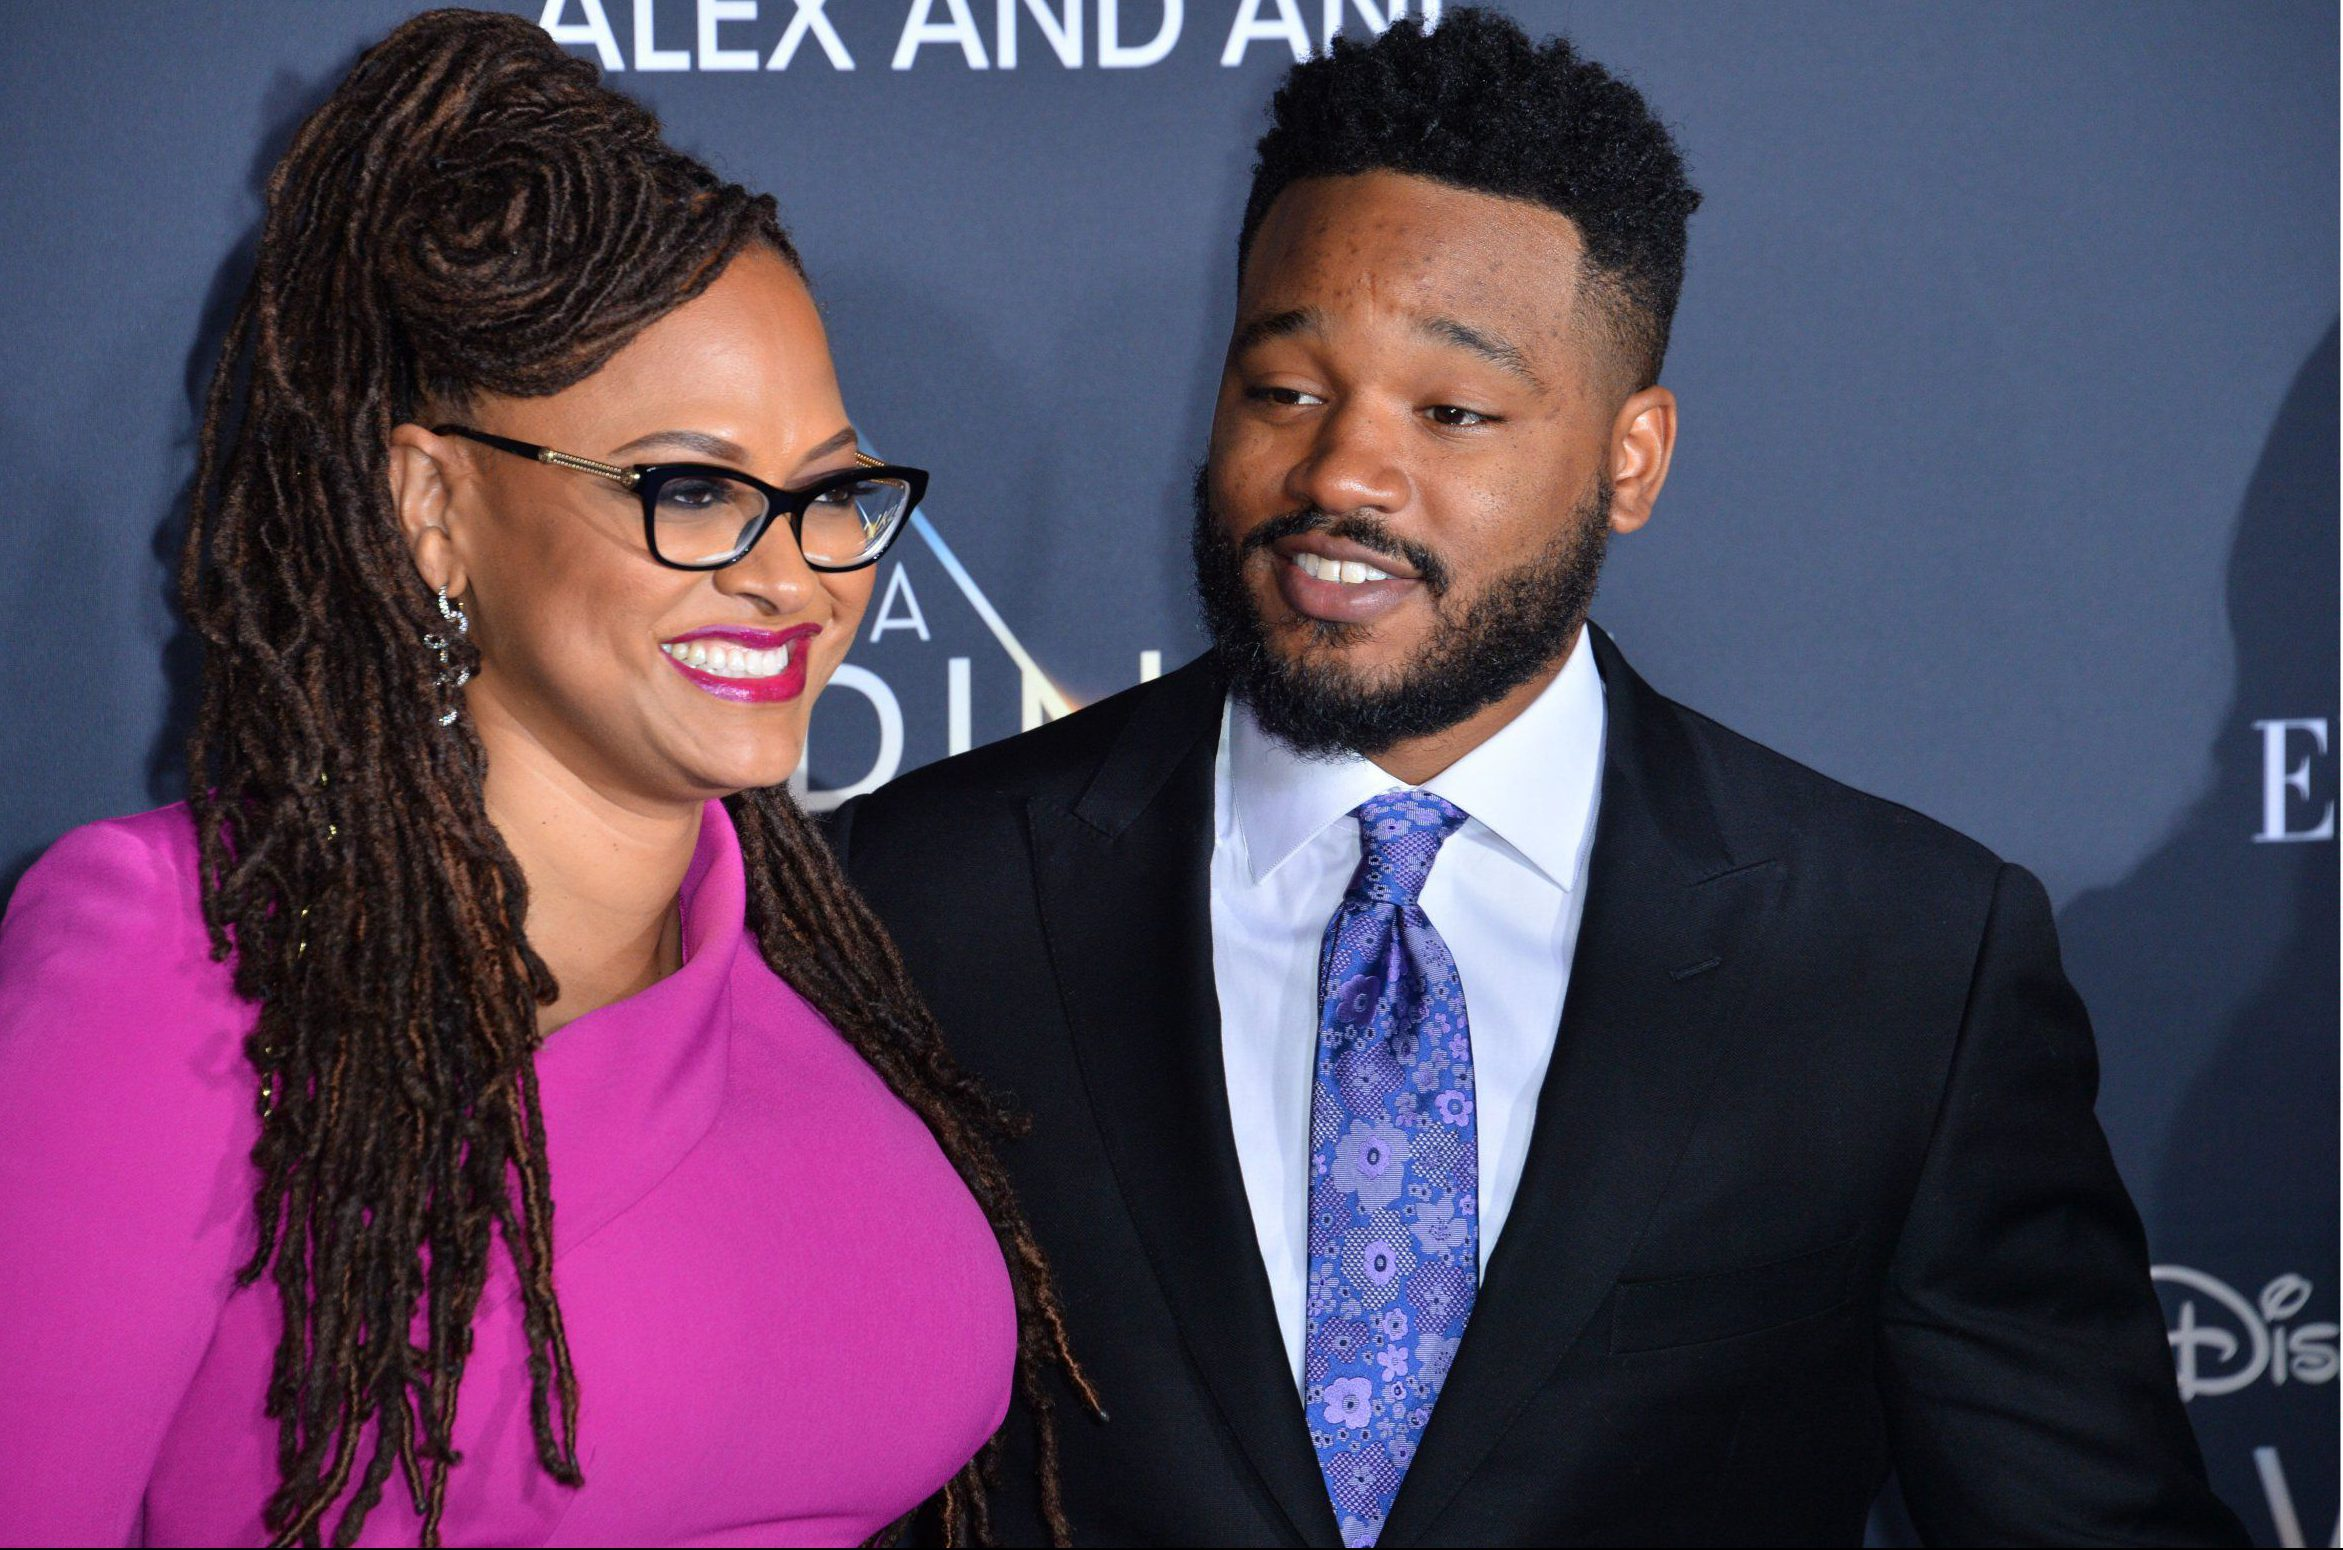 Black Panther's Ryan Coogler writes the sweetest ode to A Wrinkle In Time director Ava DuVernay